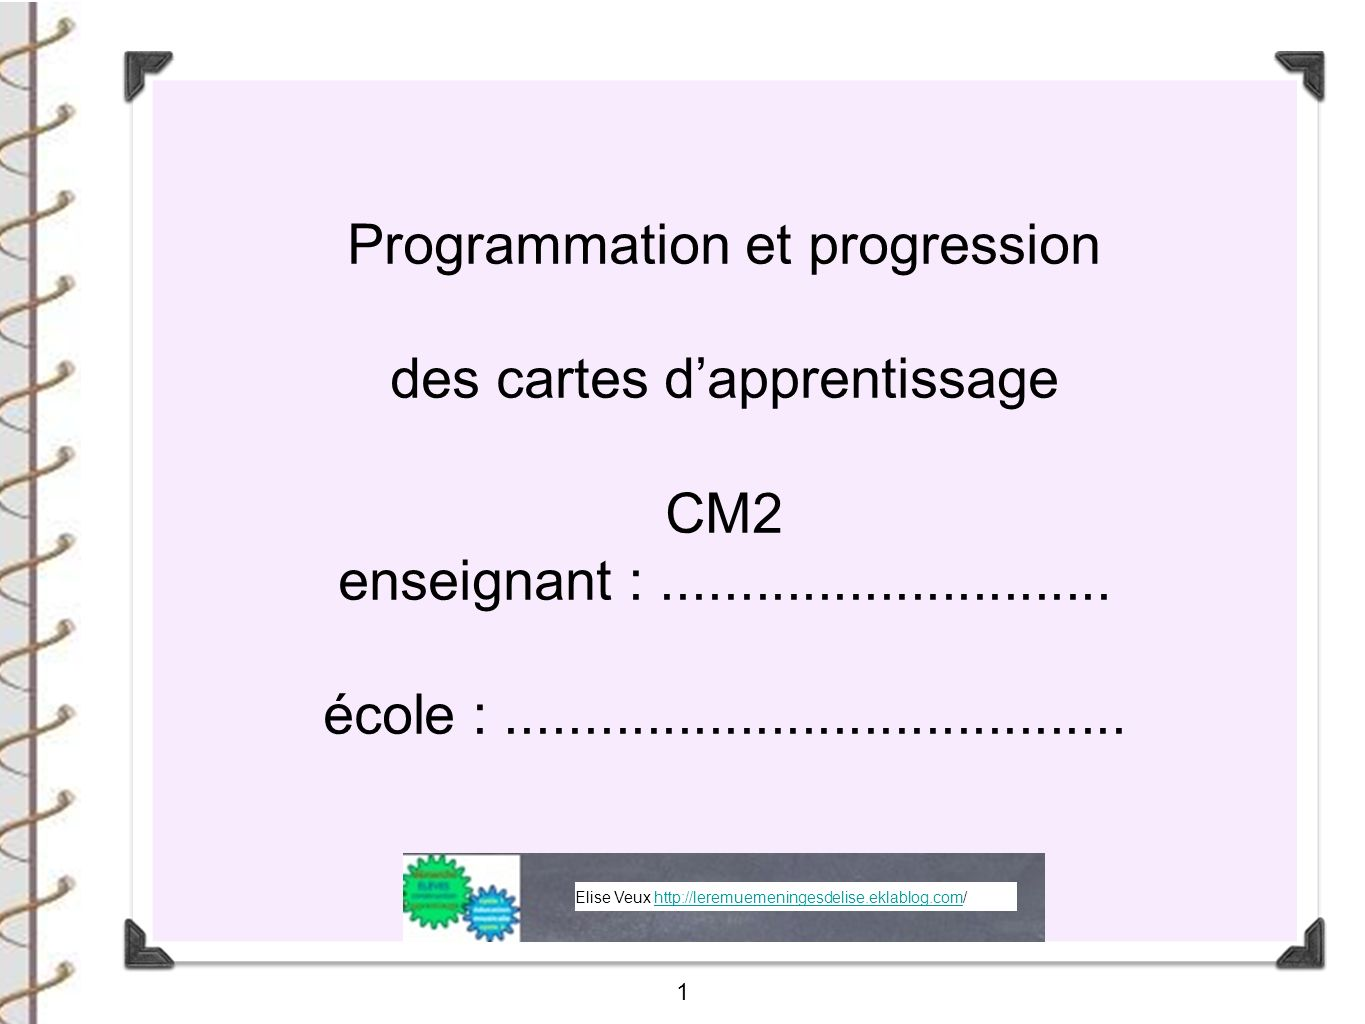 Programmation et progression des cartes d'apprentissage CM2